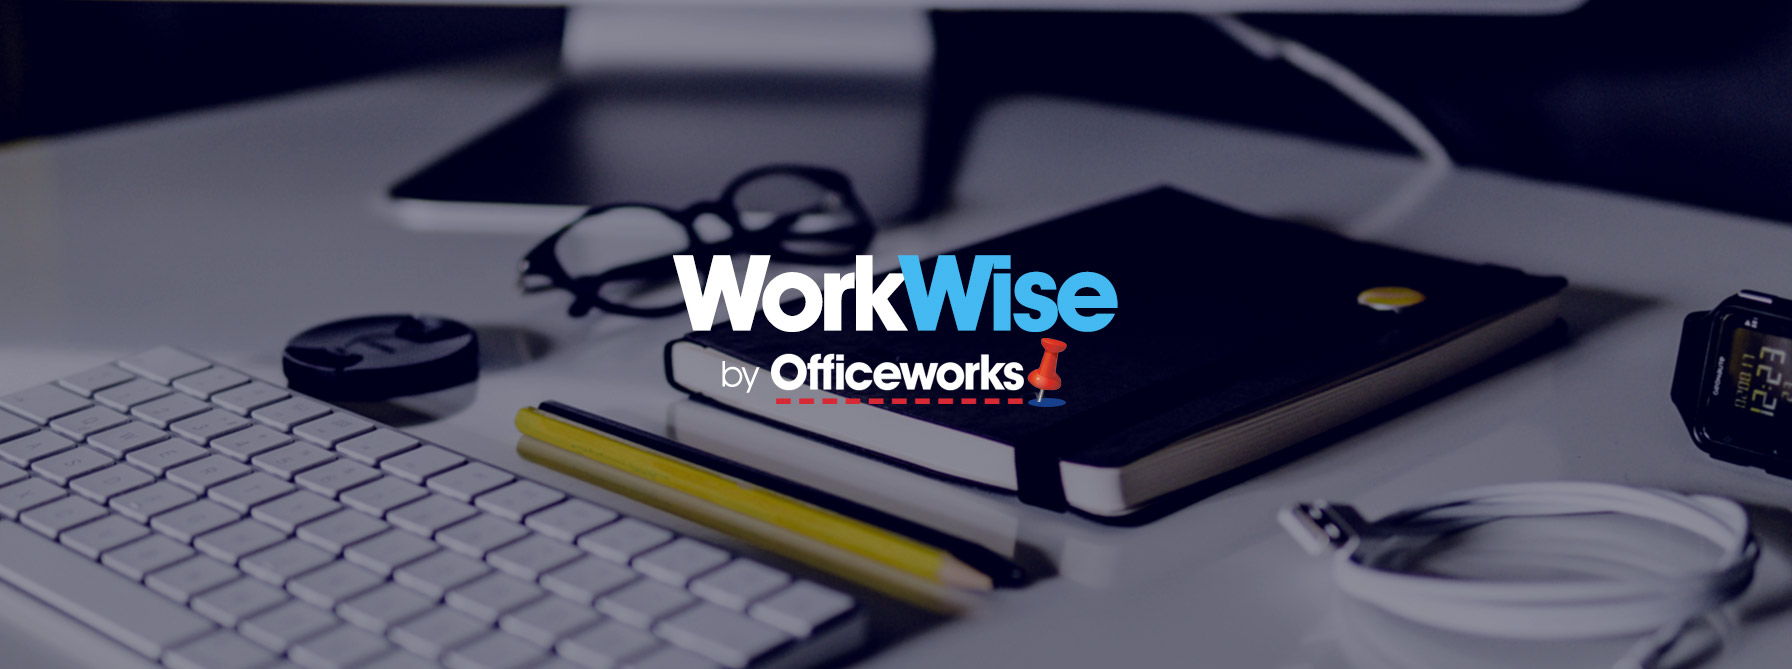 Officeworks amplification-first content marketing strategy header